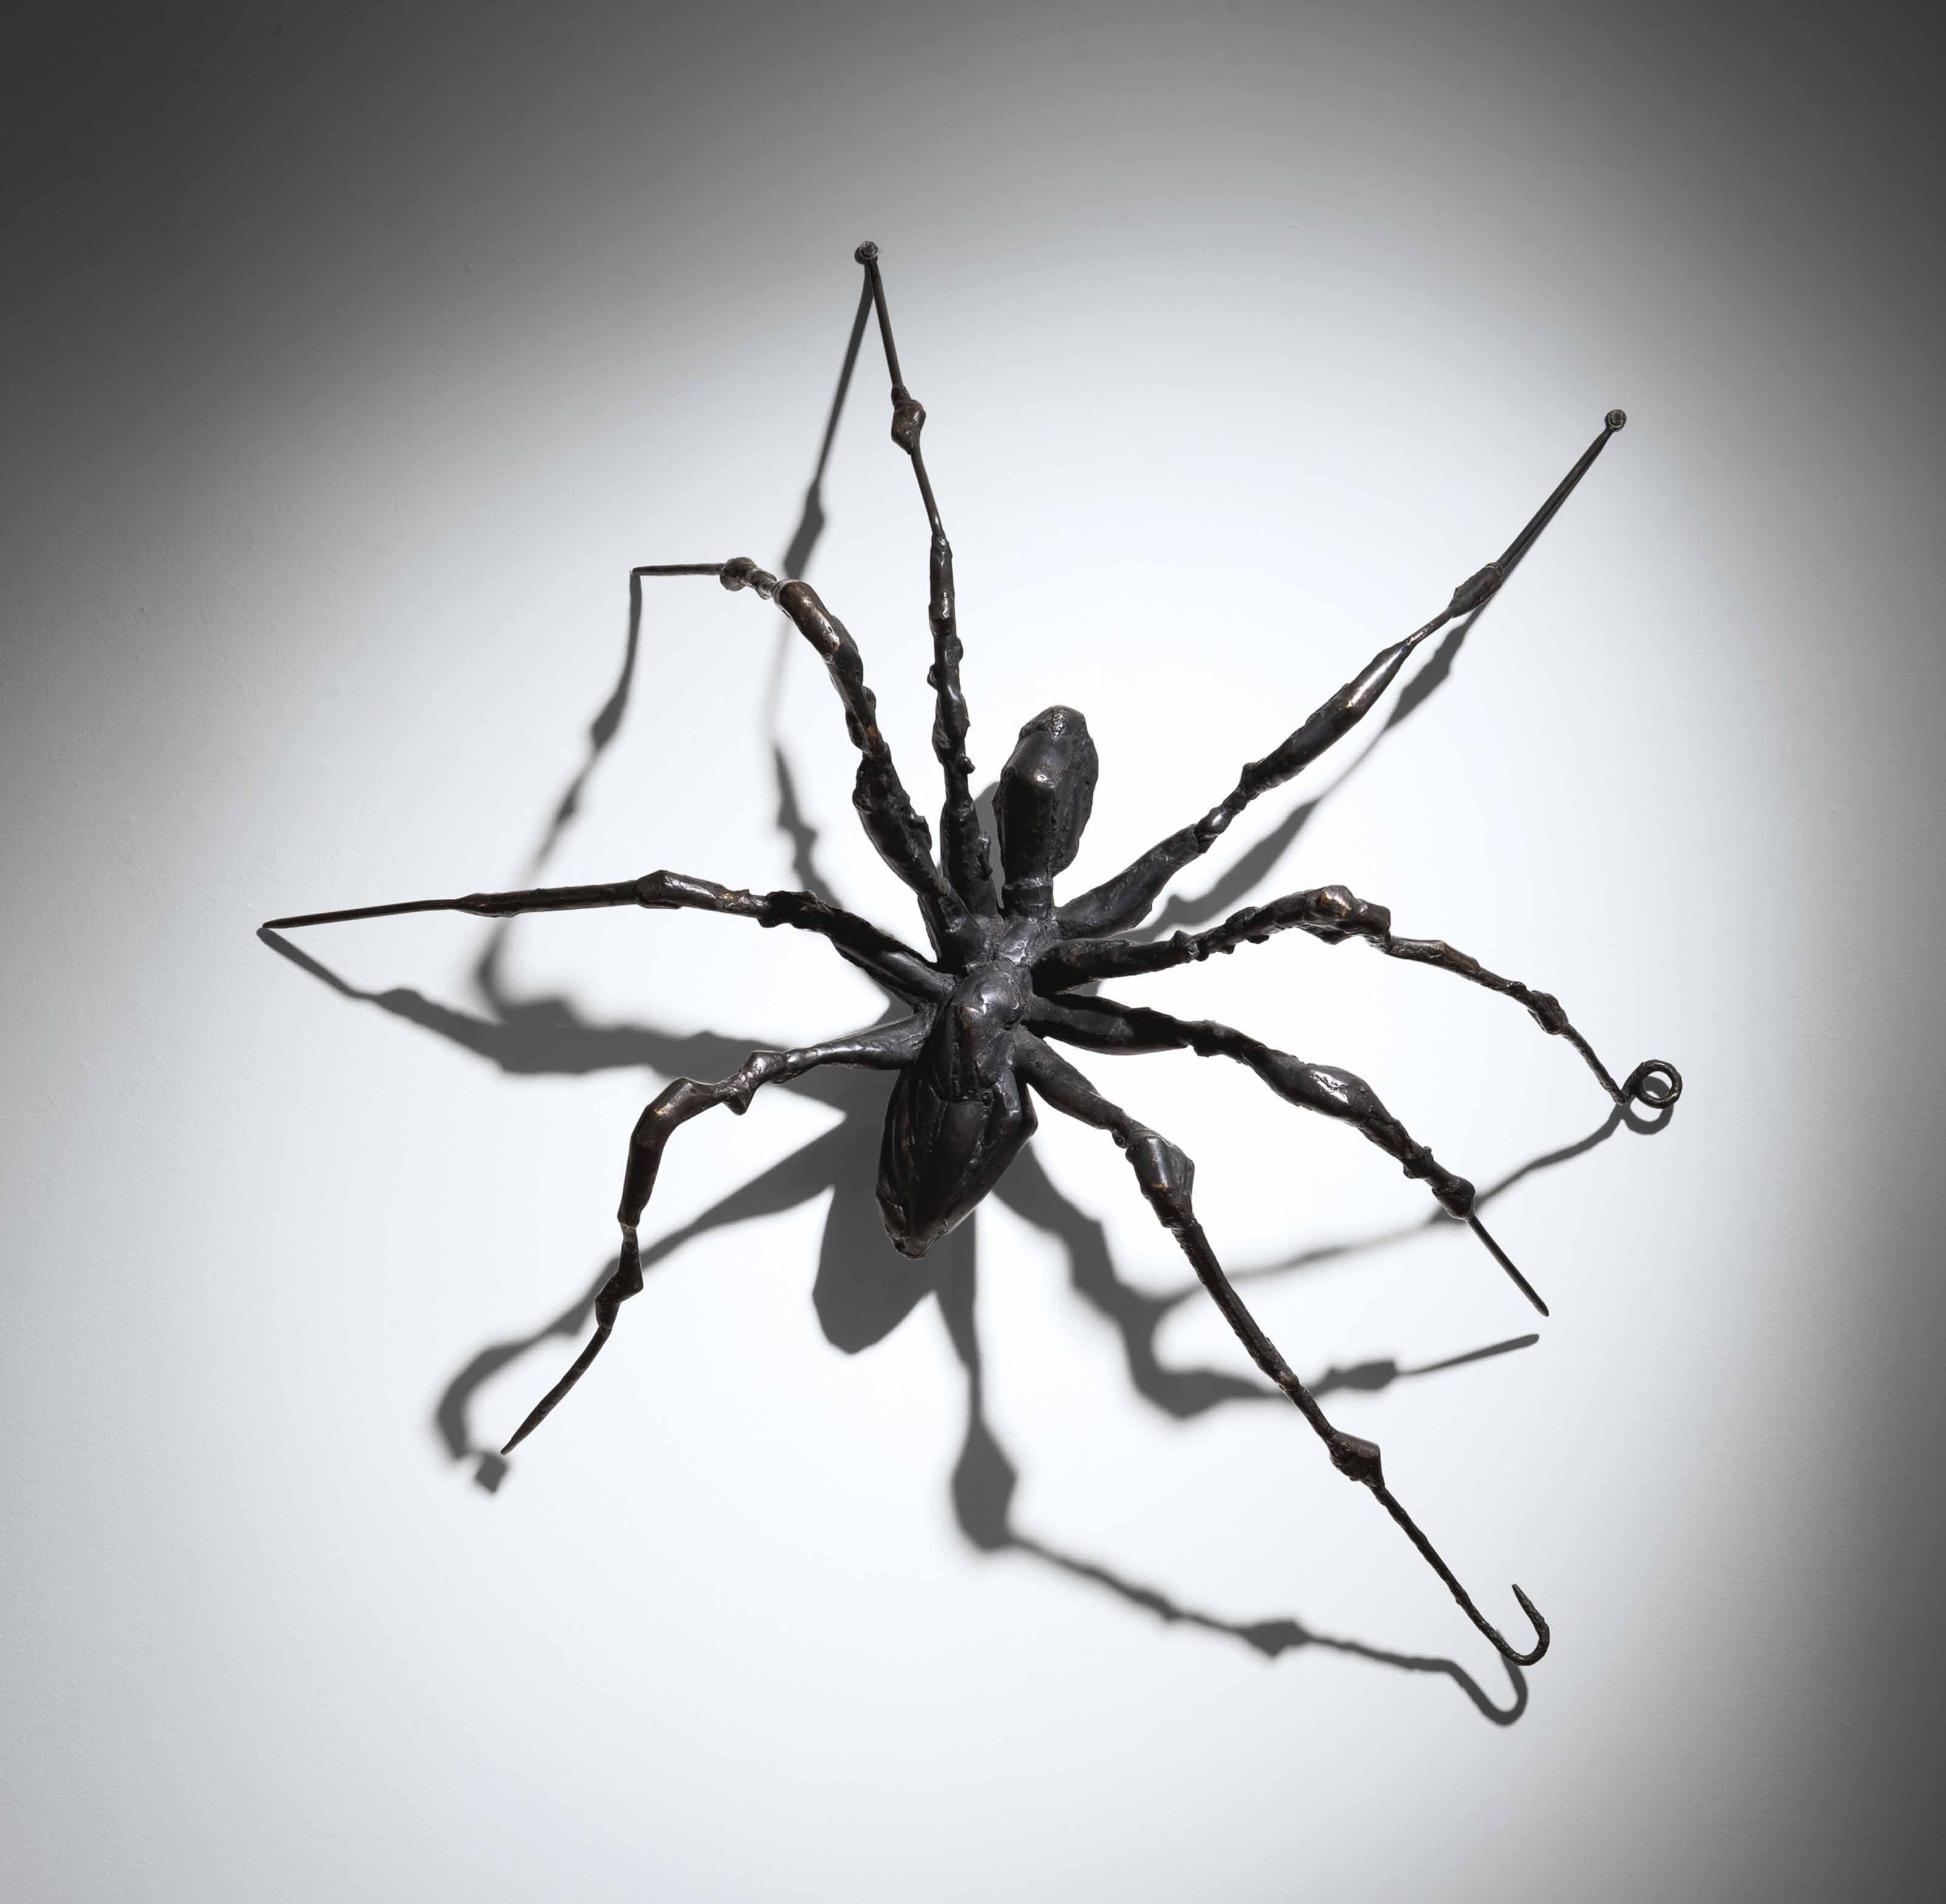 Louise Bourgeois (1911-2010), Spider II, 1995. Bronze. 73 x 73 x 22½  in (185.4 x 185.4 x 57.2  cm). Sold for $11,562,500 on 15 November 2017 at Christie's in New York. Artwork © The Easton FoundationVAGA at ARS, NY and DACS, London 2021